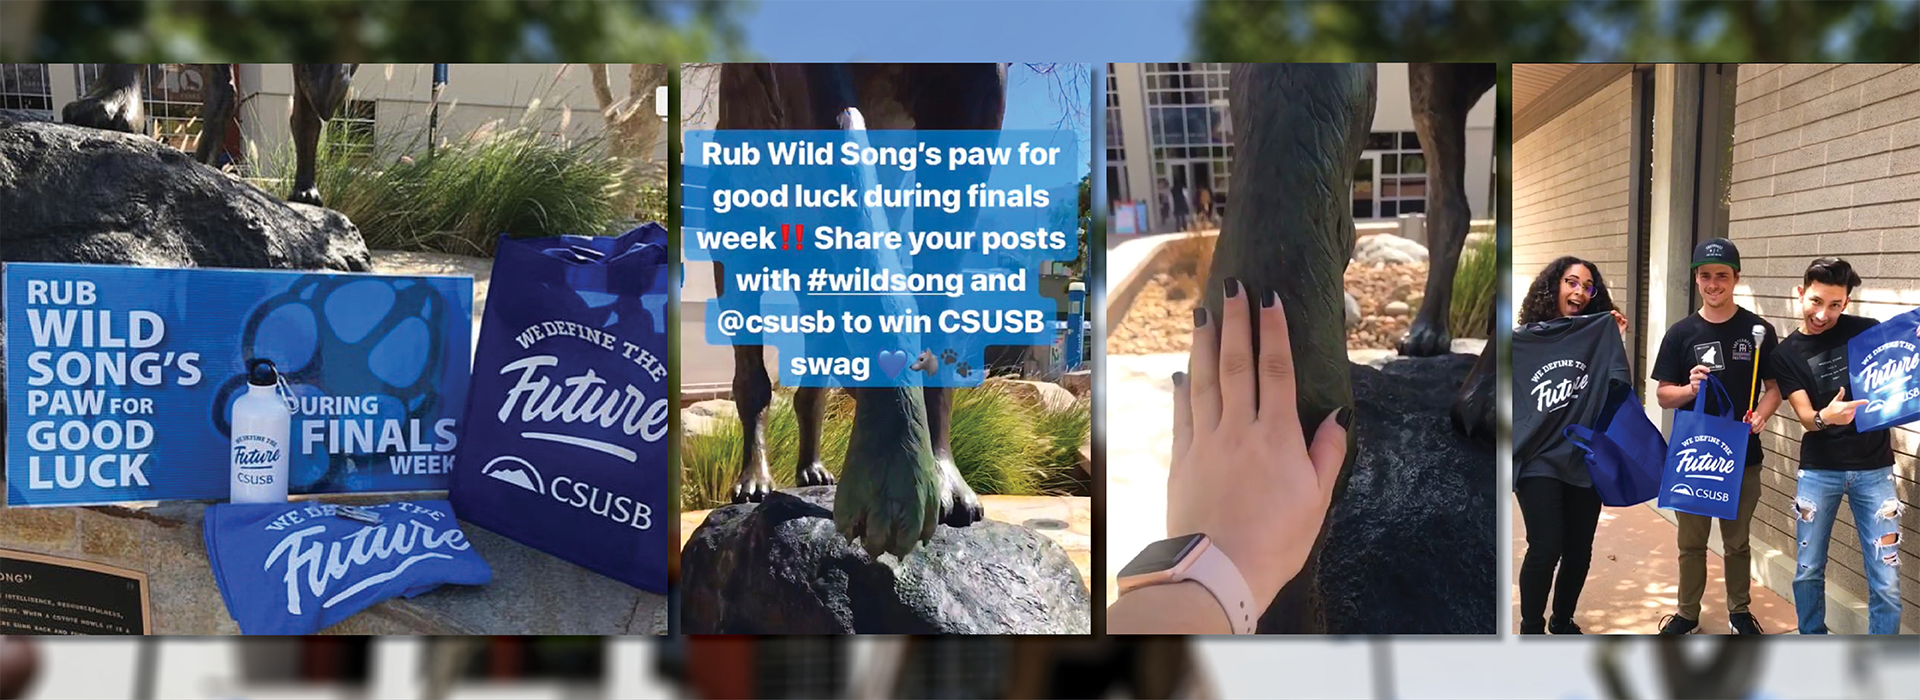 It's a Coyote tradition: Rub Wild Song's paw for good luck during finals week